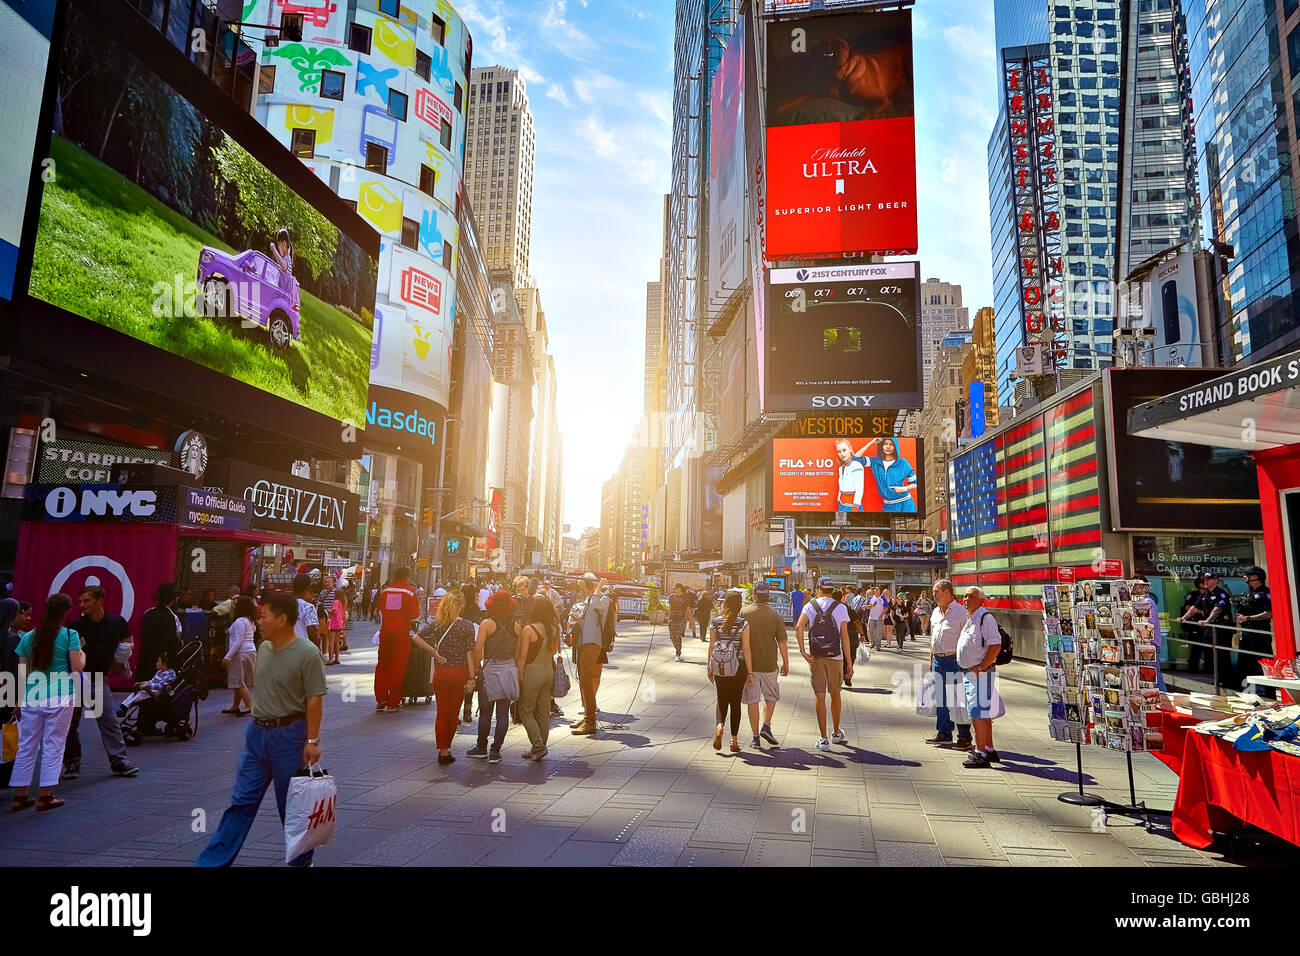 NEW YORK CITY - JUNE 14, 2016: Times Square. USA - Stock Image